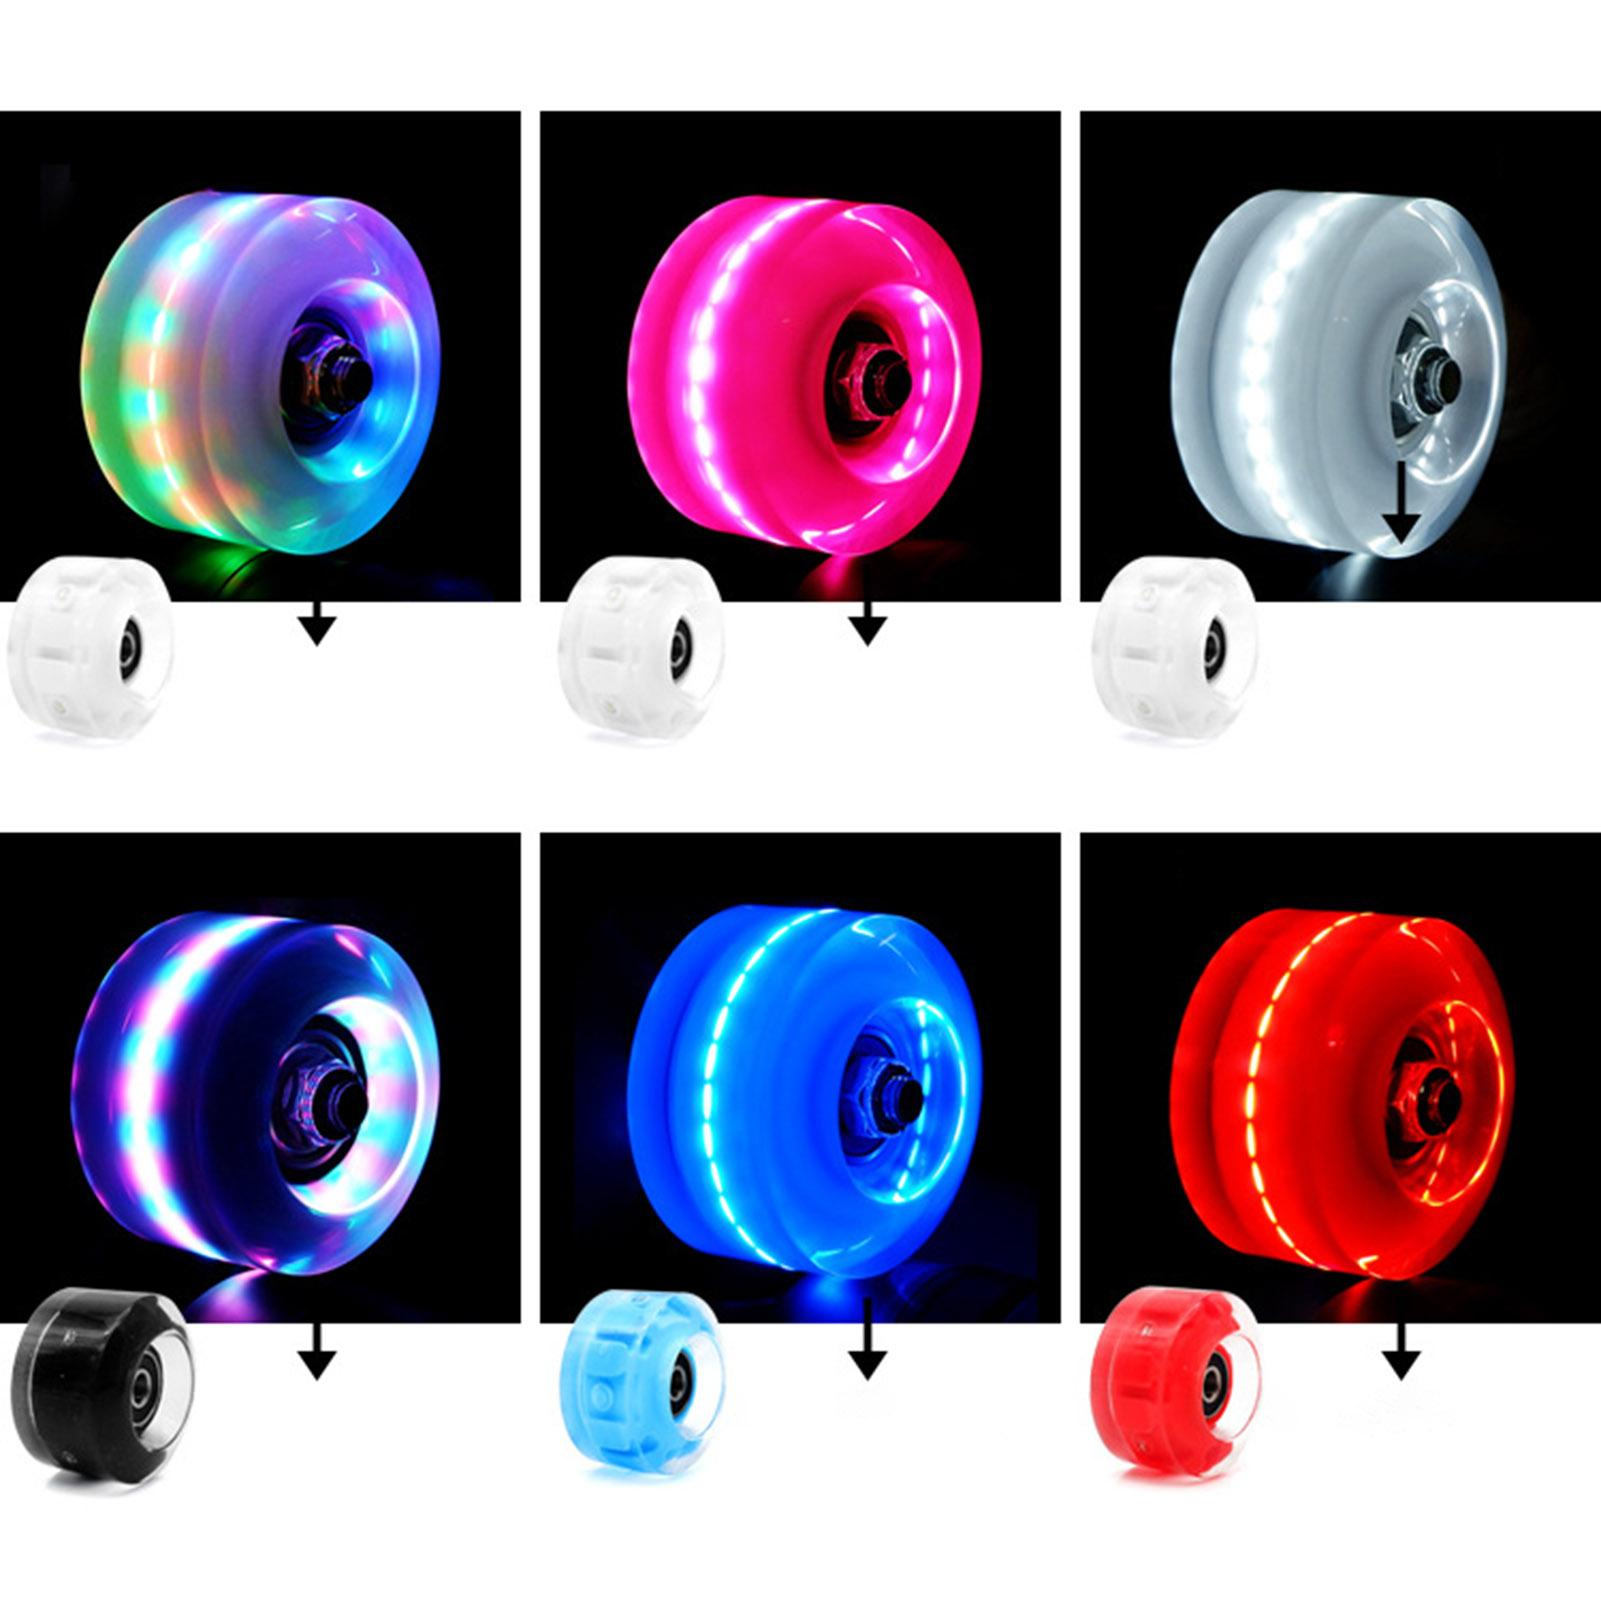 4pcs LED Double-row Roller Skates Luminous Wheel Roller Skates Flashing Wheels for Inline Skates for Adults Kids Roller Wheels